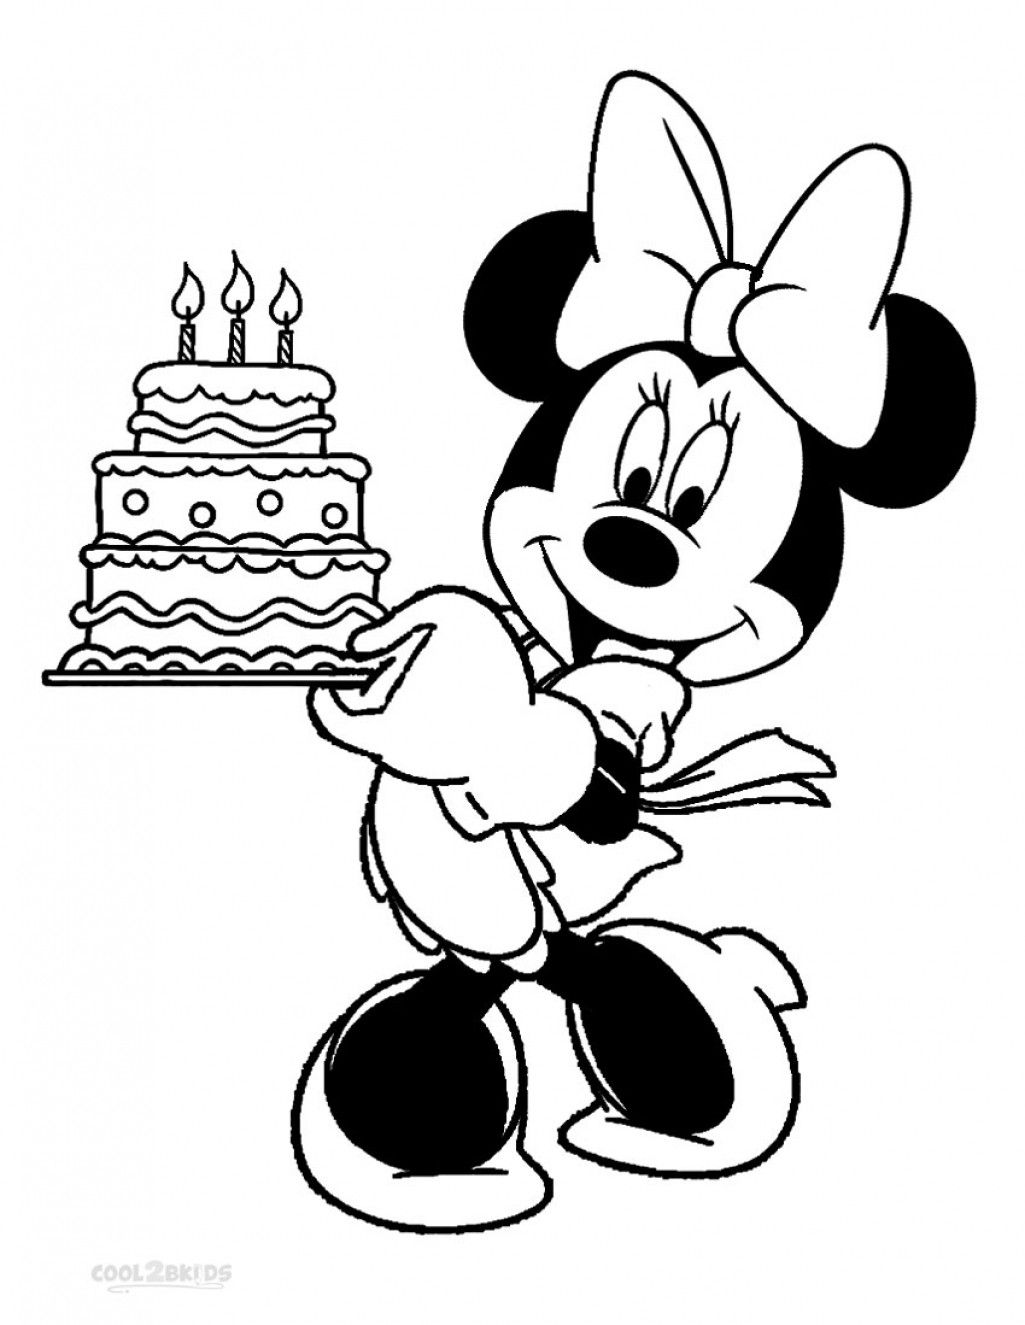 Baby Mickey Mouse Coloring Pages To Print Copy Free Disney Minnie ...